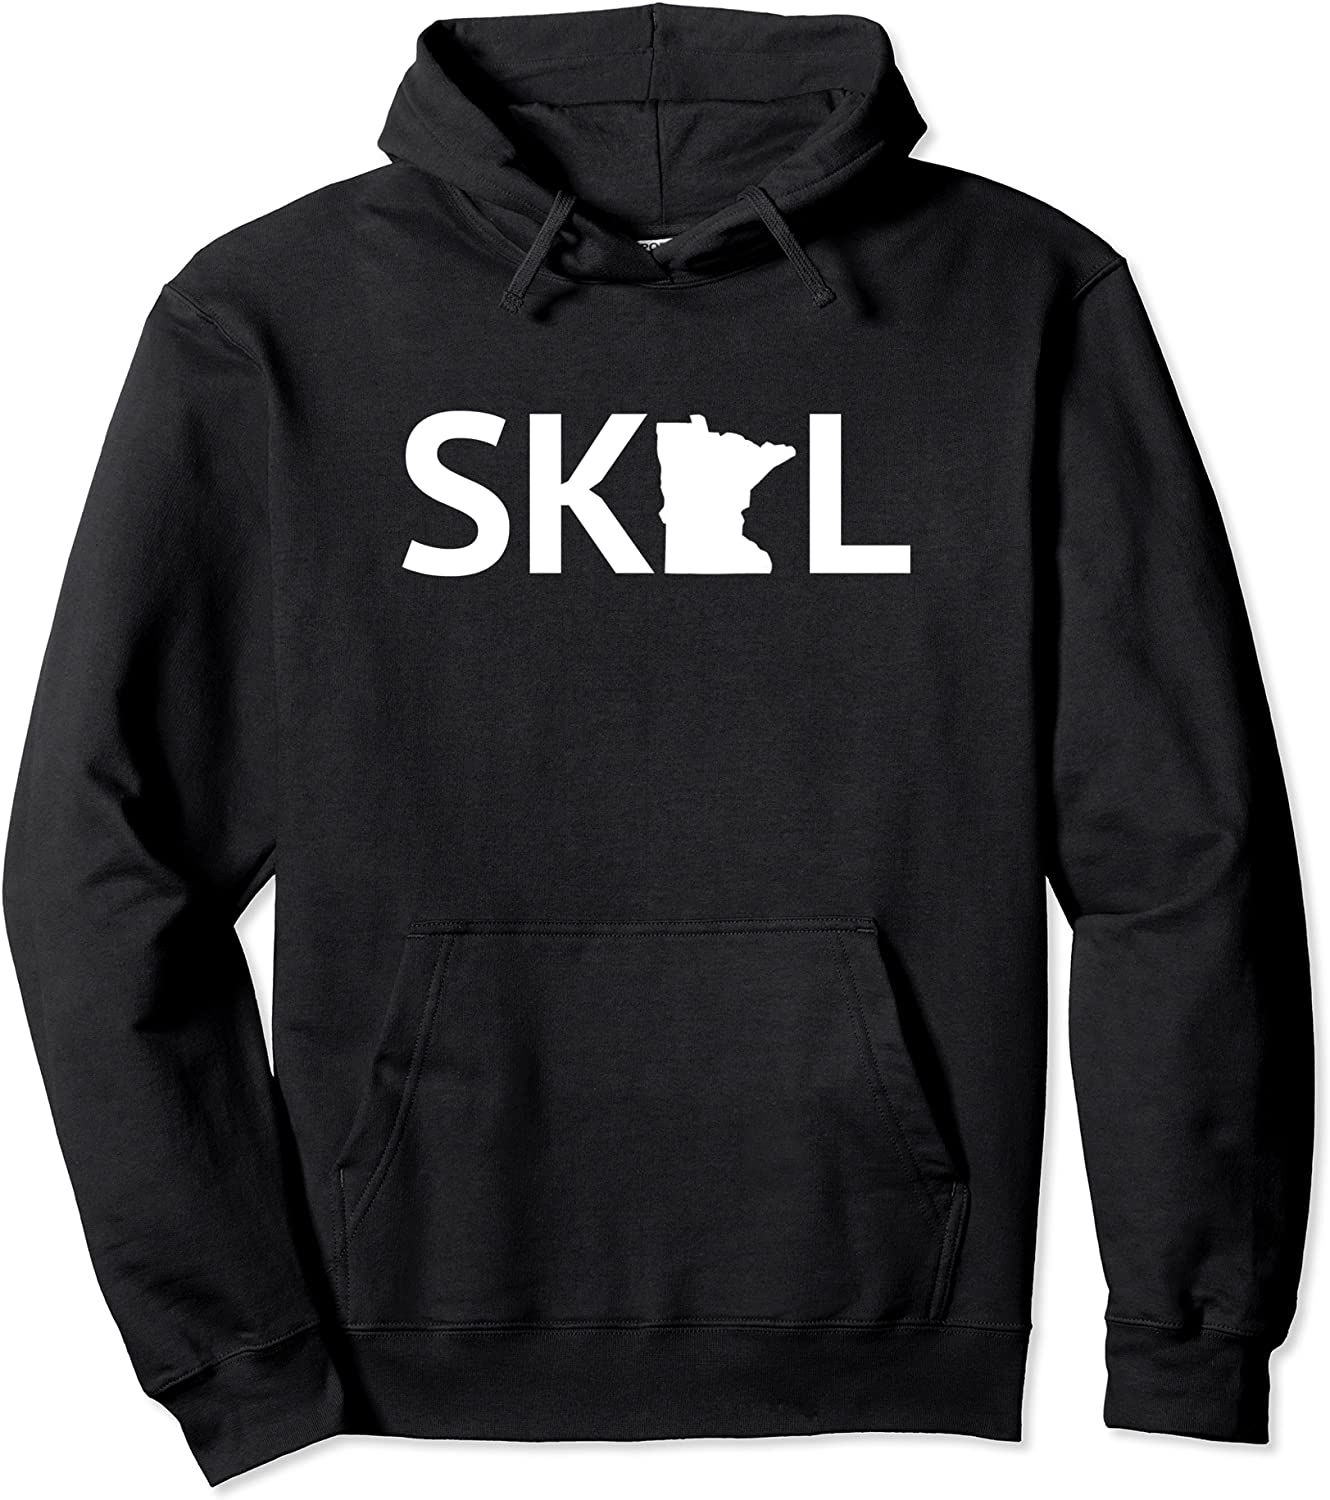 SKOL Minnesota Directly managed store Hoodie Let's Go MN Sweatshirt Max 70% OFF Hooded